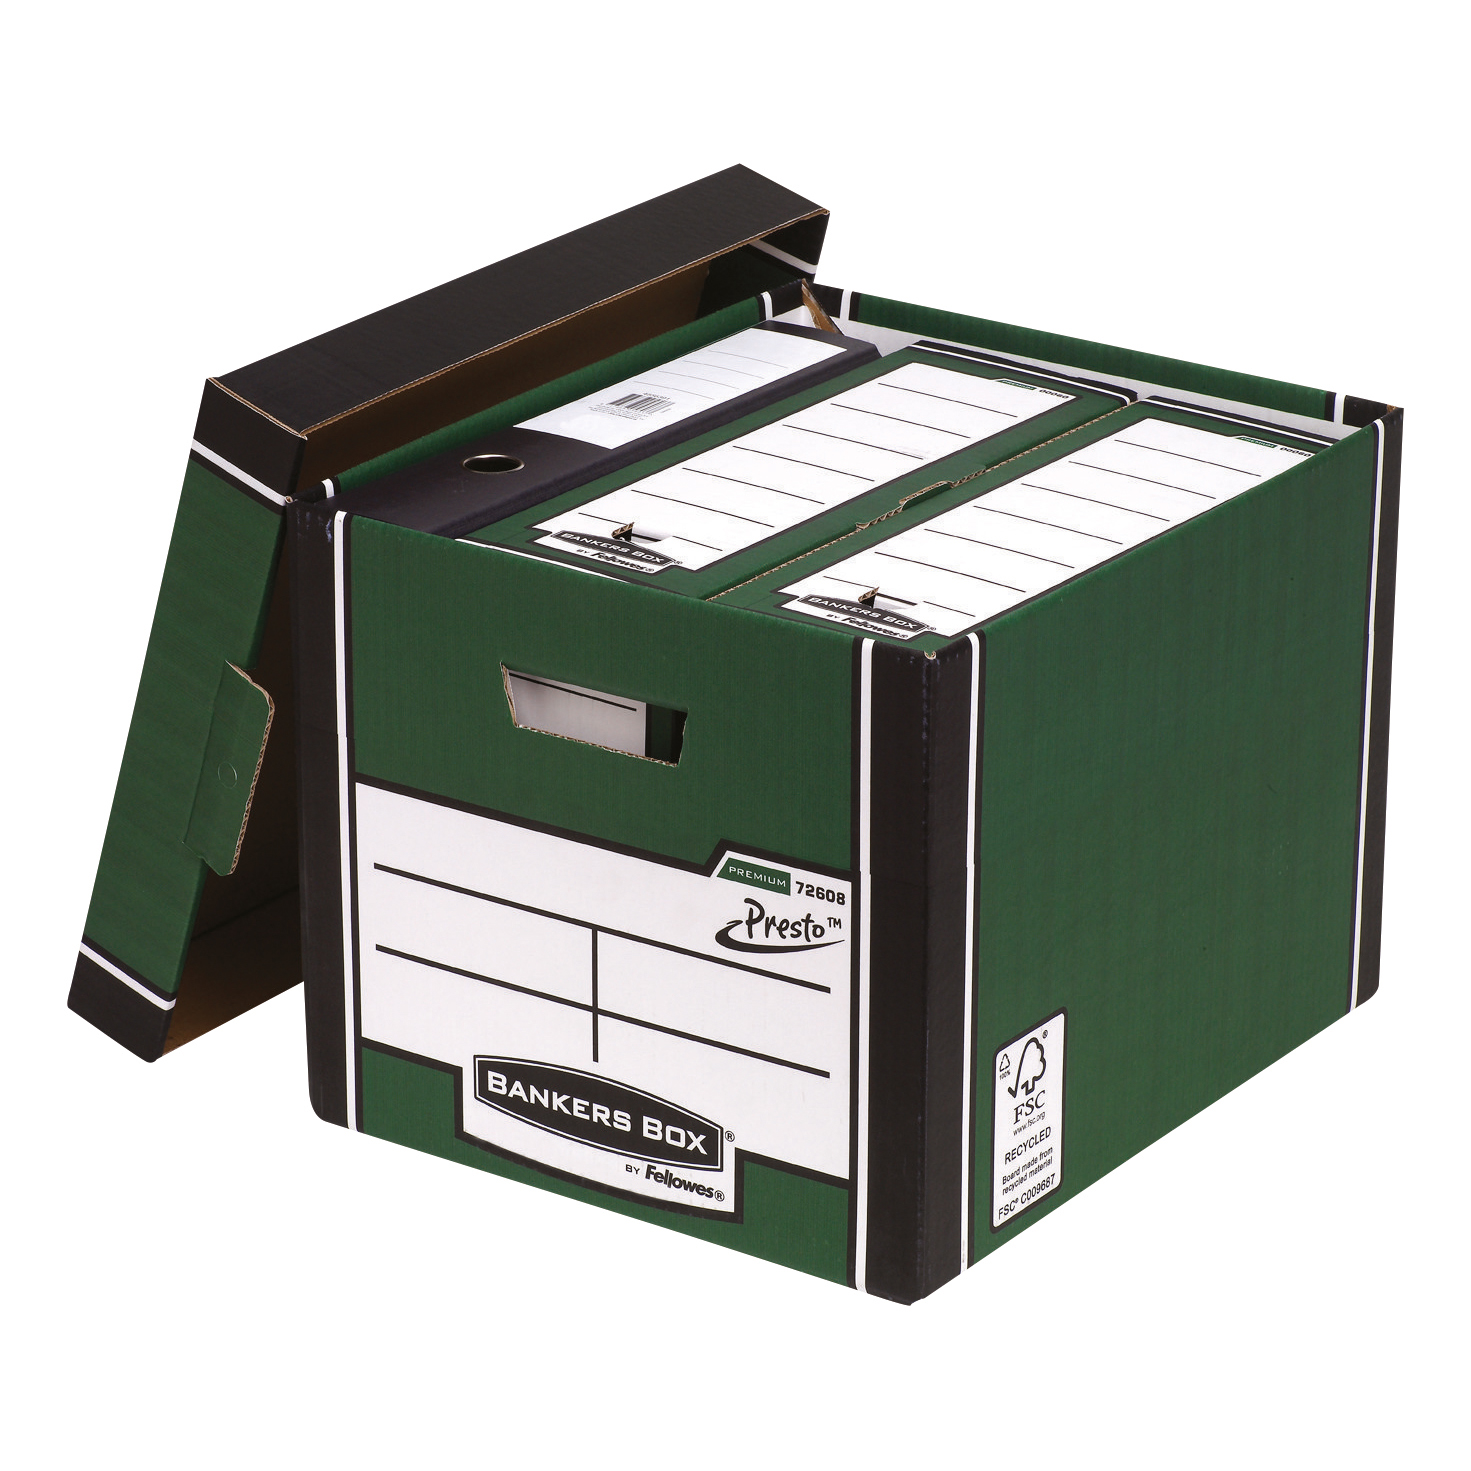 Bankers Box Premium Storage Box (Presto) Tall Green FSC Ref 7260802 Pack 10